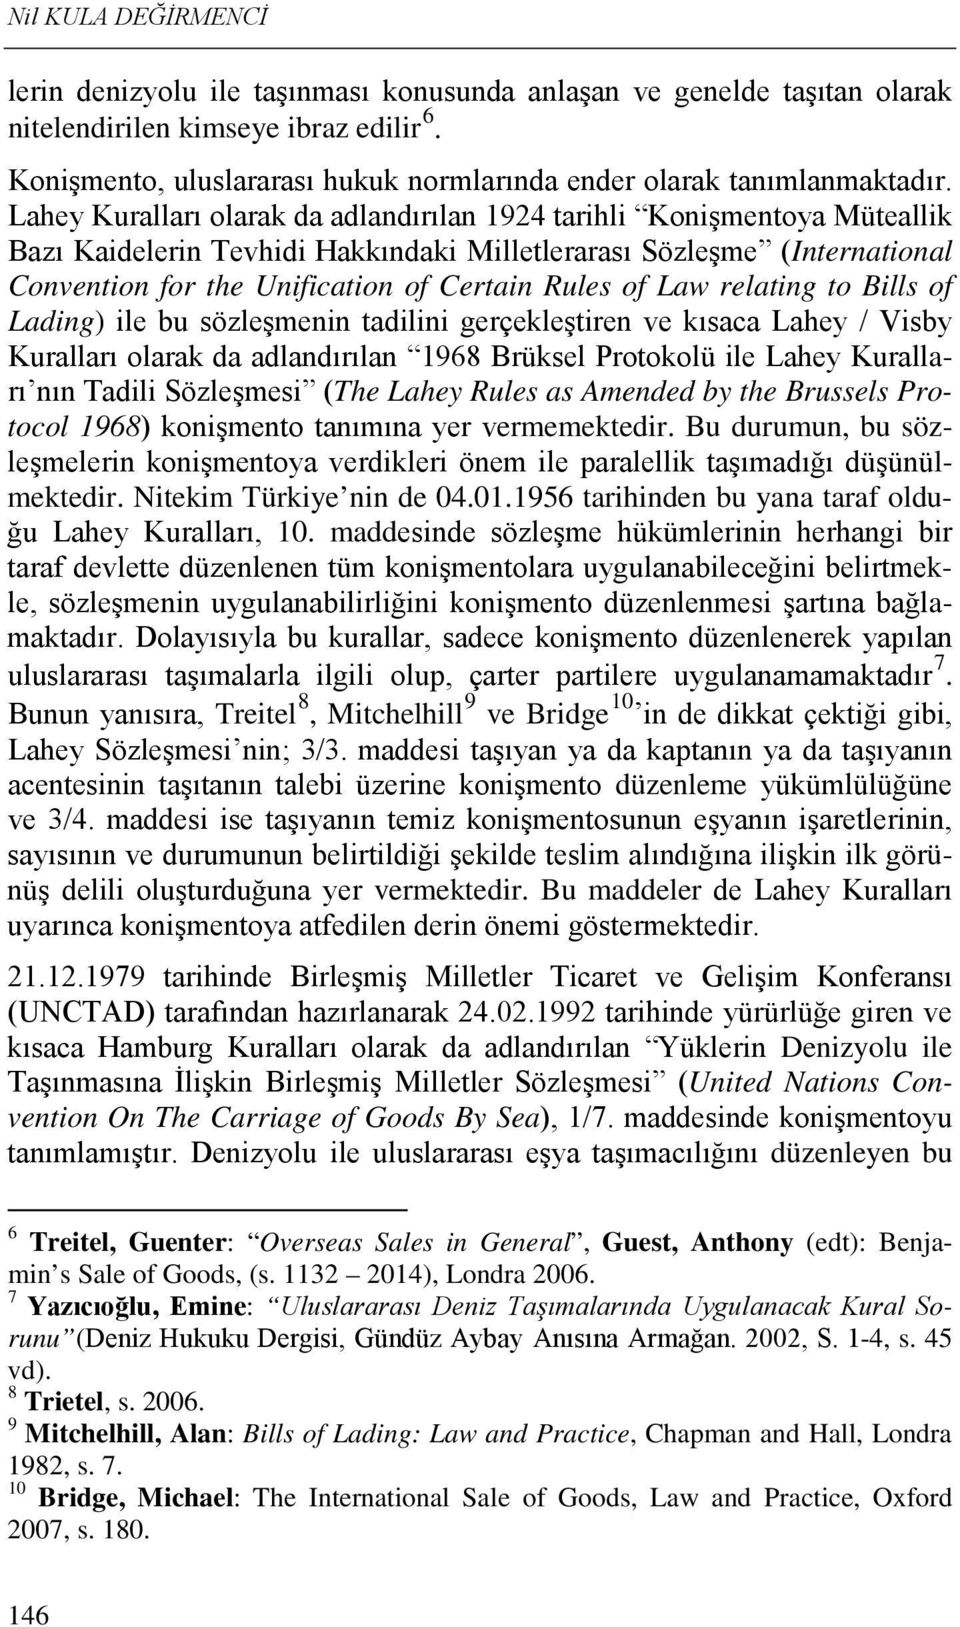 Lahey Kuralları olarak da adlandırılan 1924 tarihli Konişmentoya Müteallik Bazı Kaidelerin Tevhidi Hakkındaki Milletlerarası Sözleşme (International Convention for the Unification of Certain Rules of